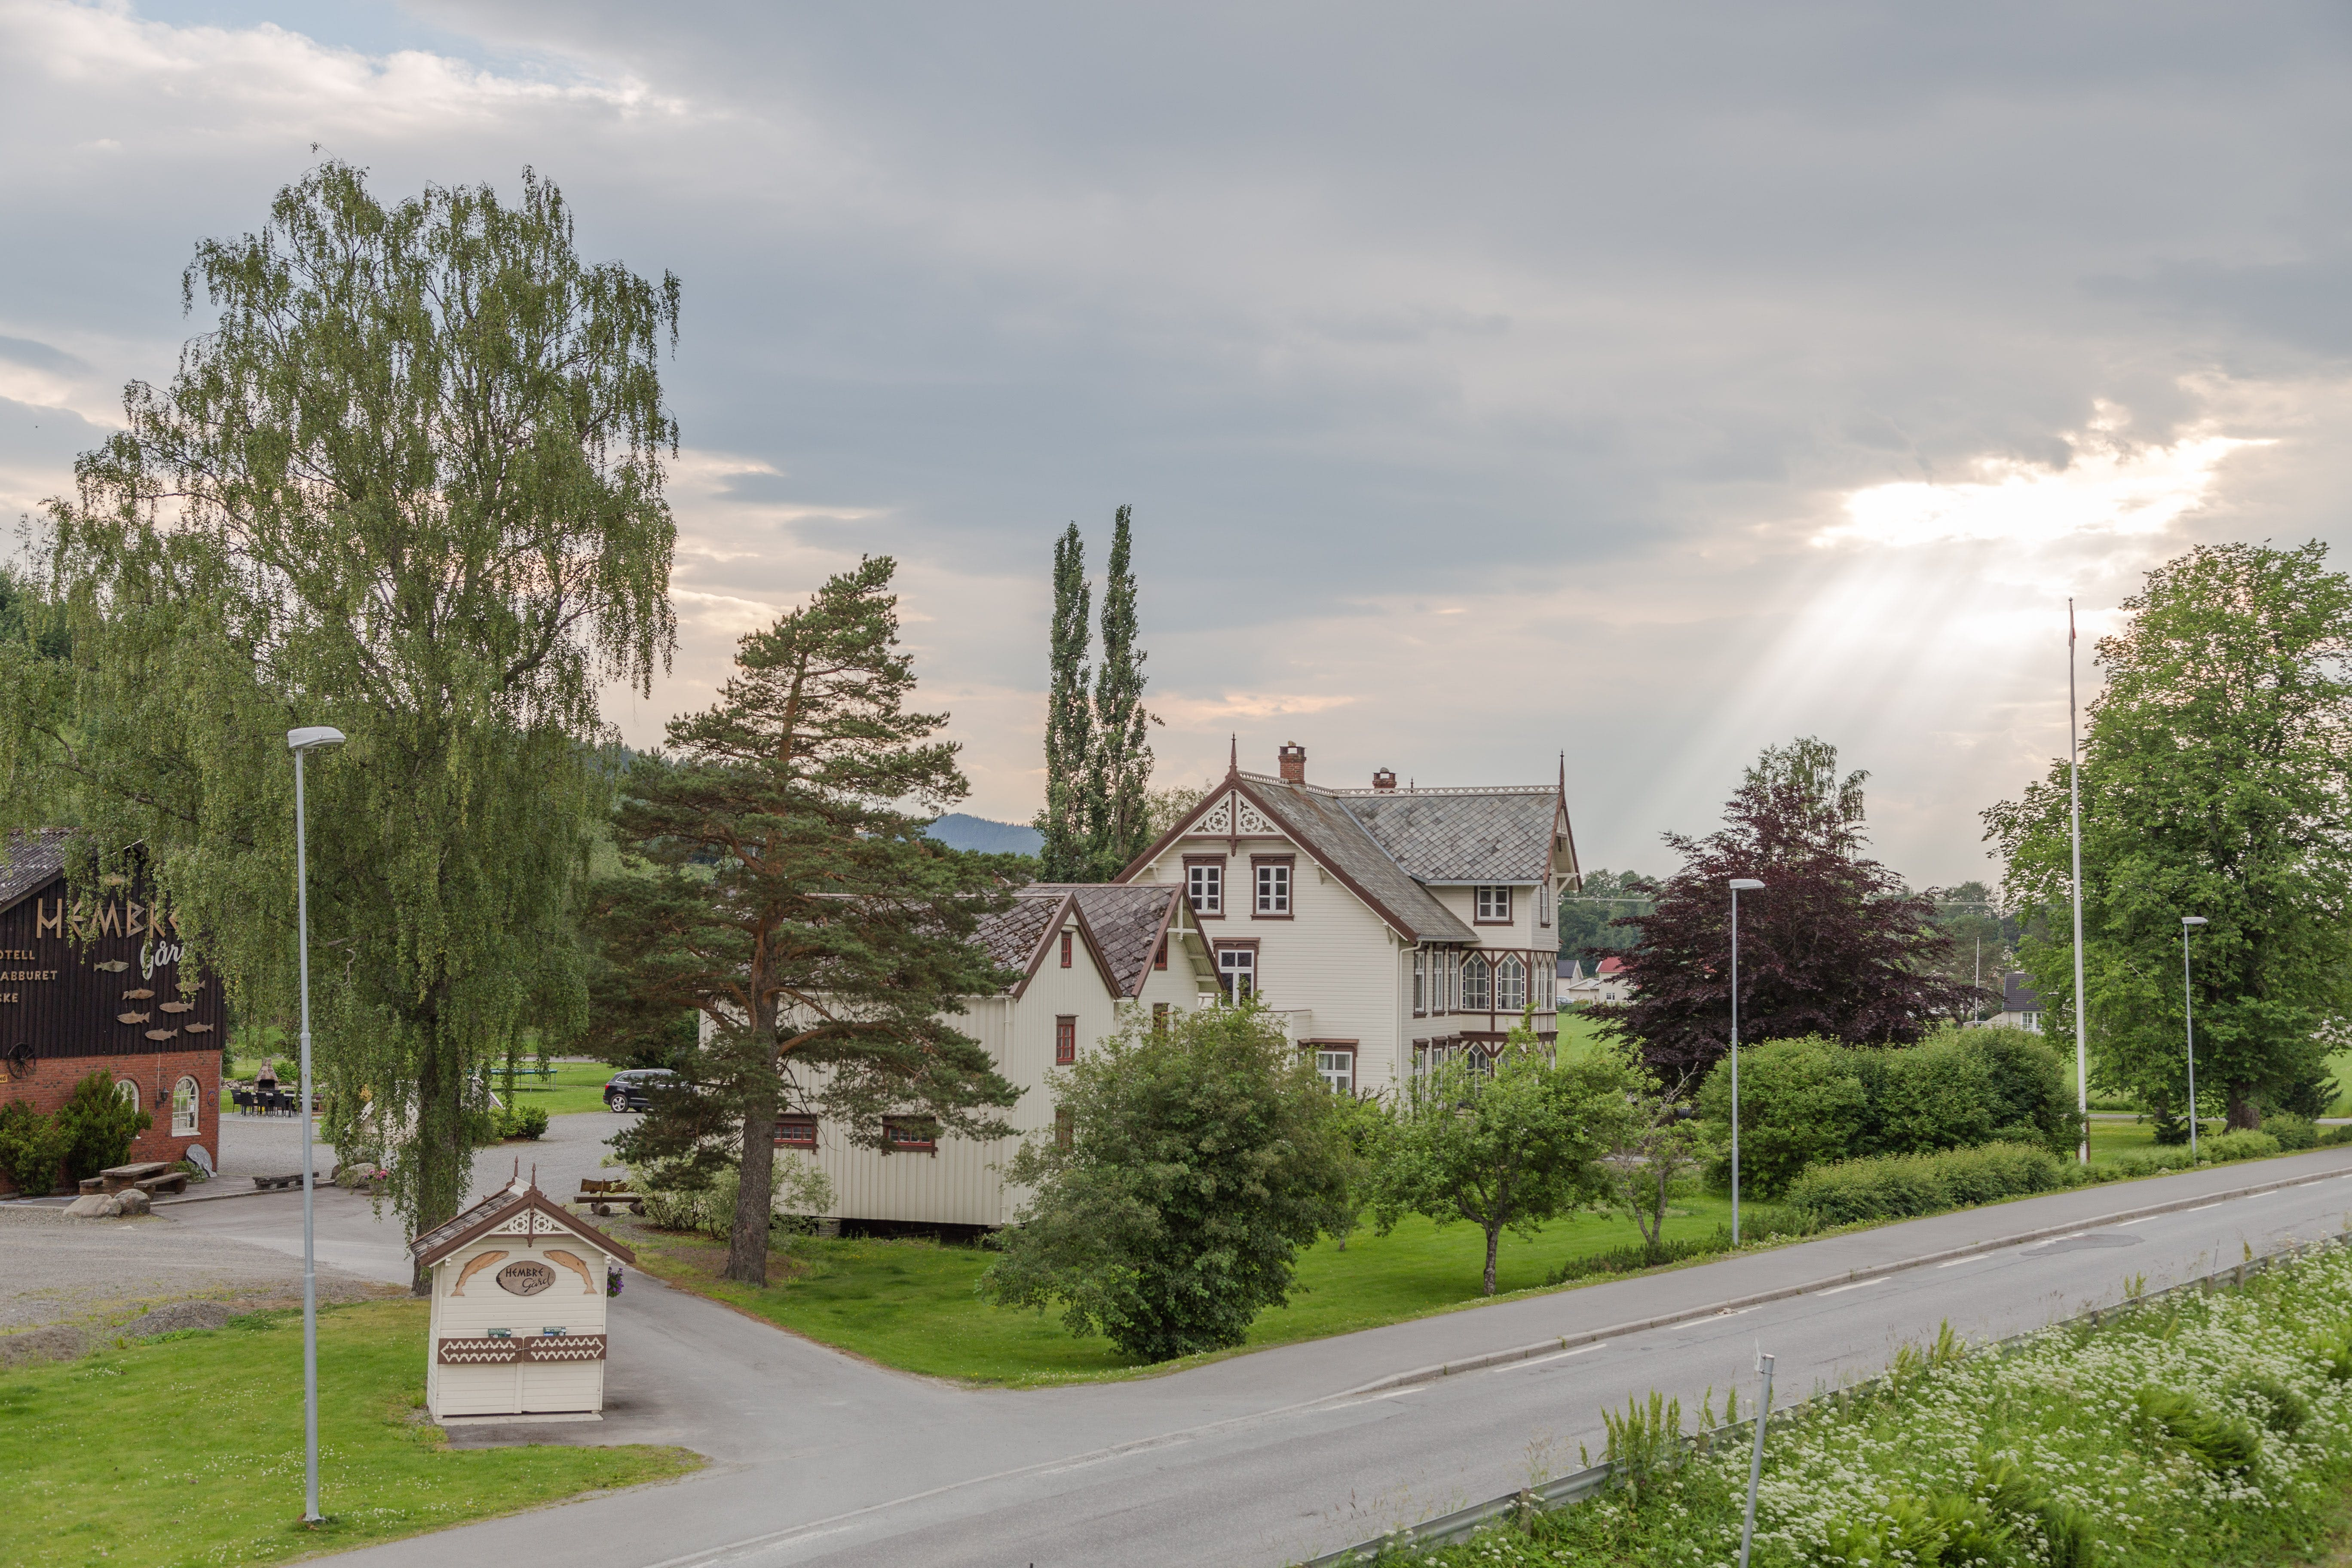 Hembre Gård is close to Trondheim Airport